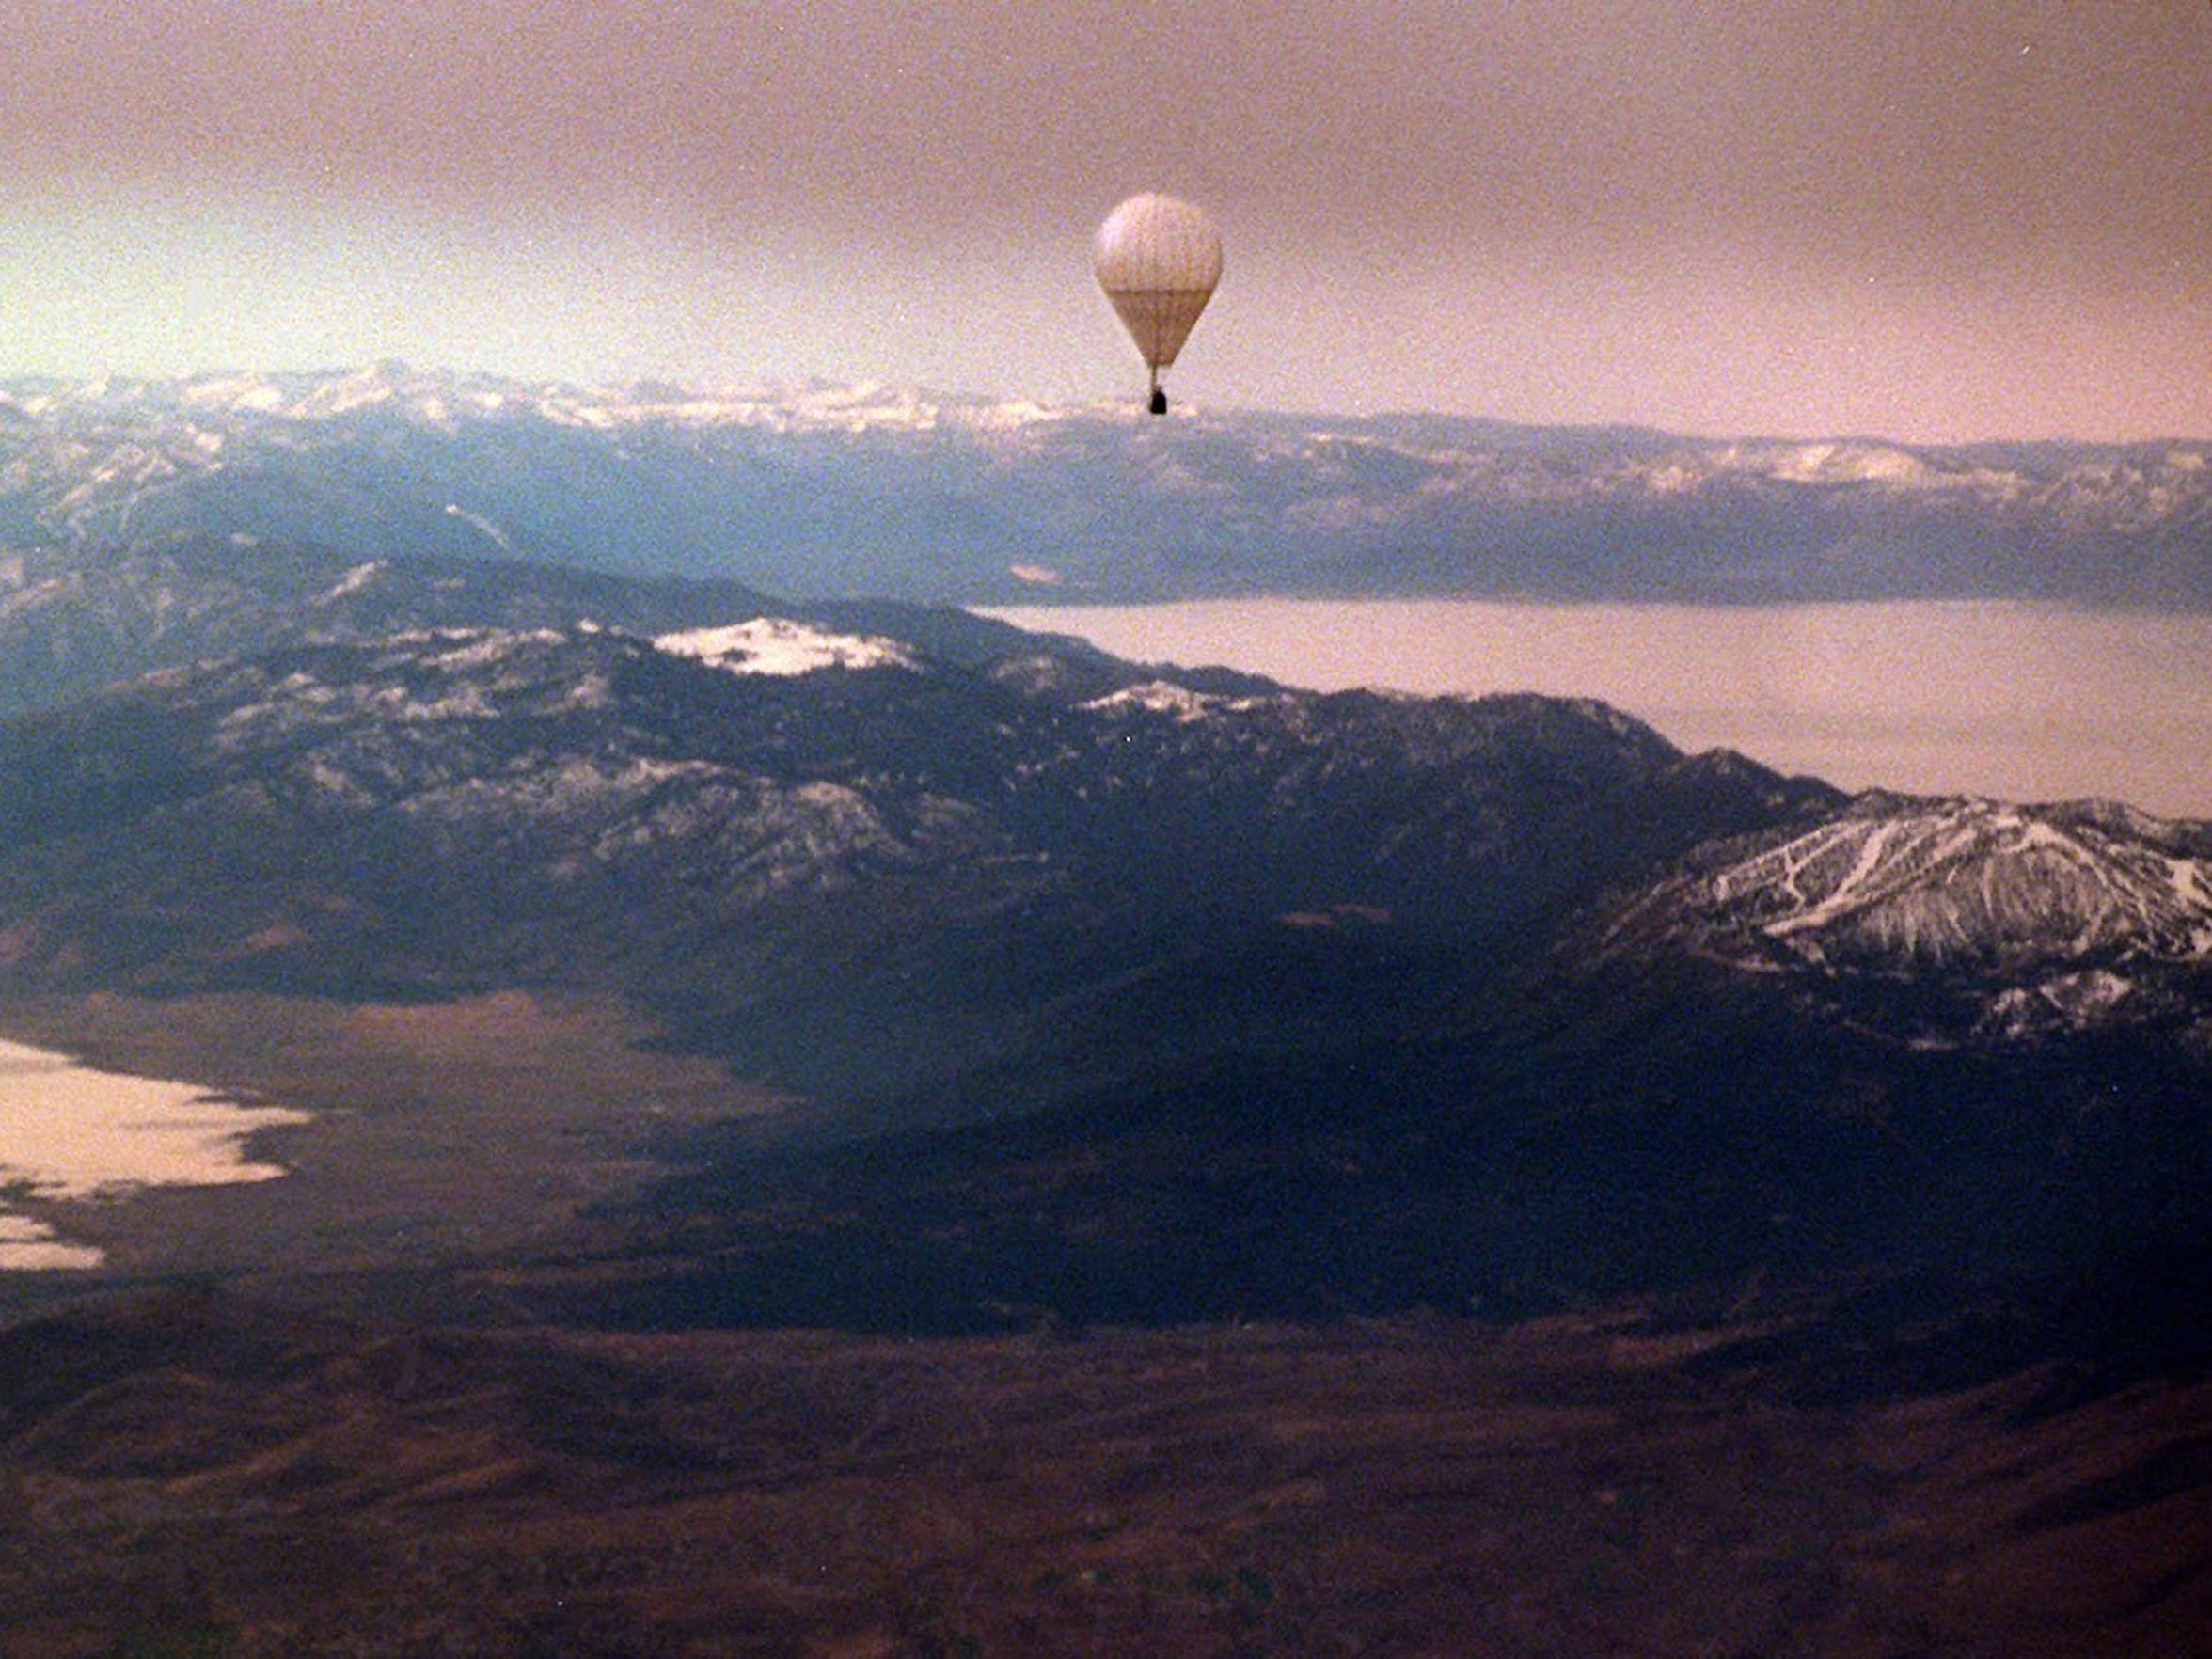 Lake Tahoe Balloons patrons embark on a skyward journey from an aquatic launch pad at sunrise.